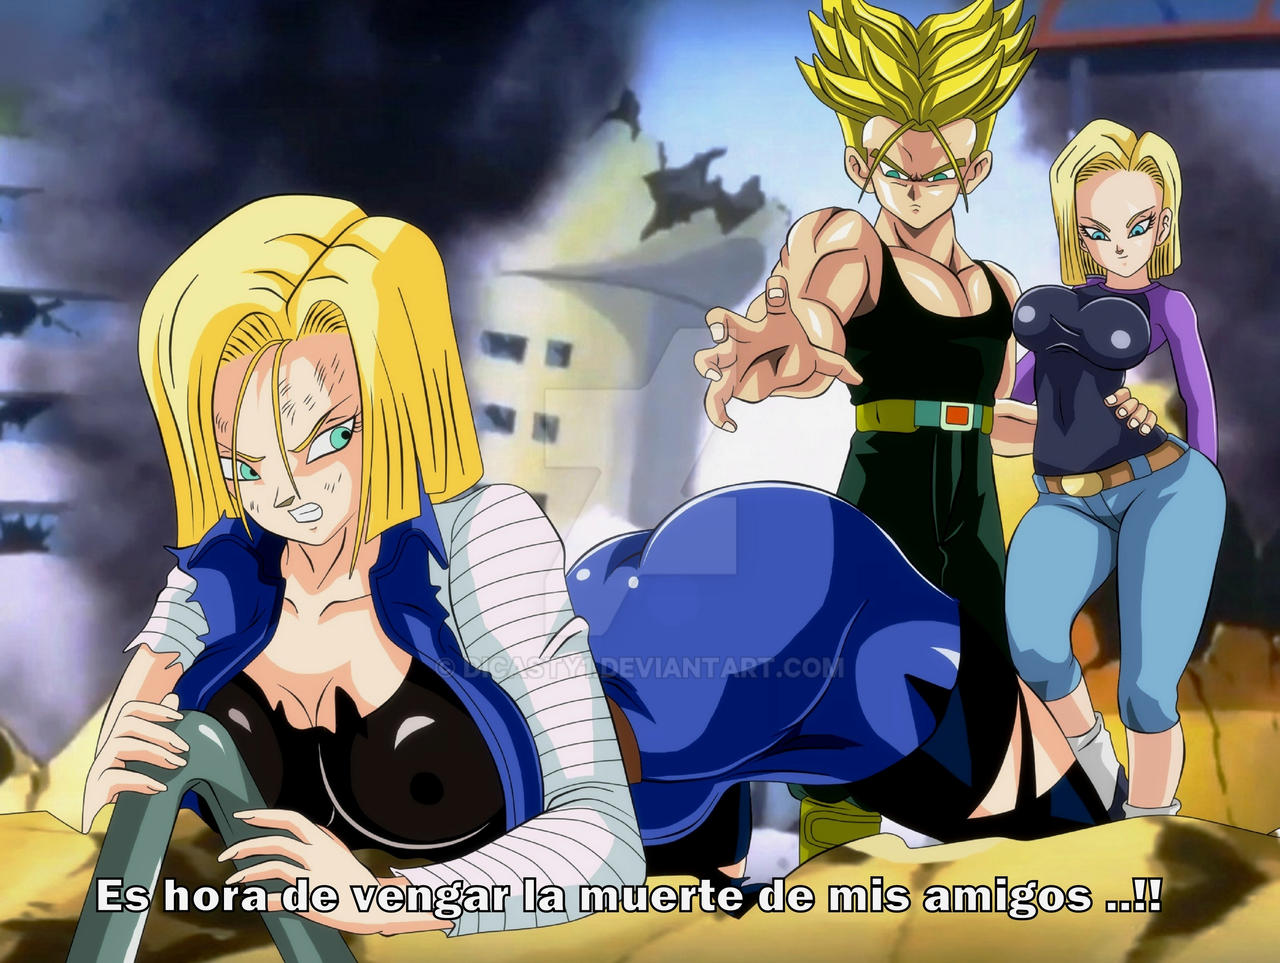 Ayes android 18 and trunks hentai pic the name